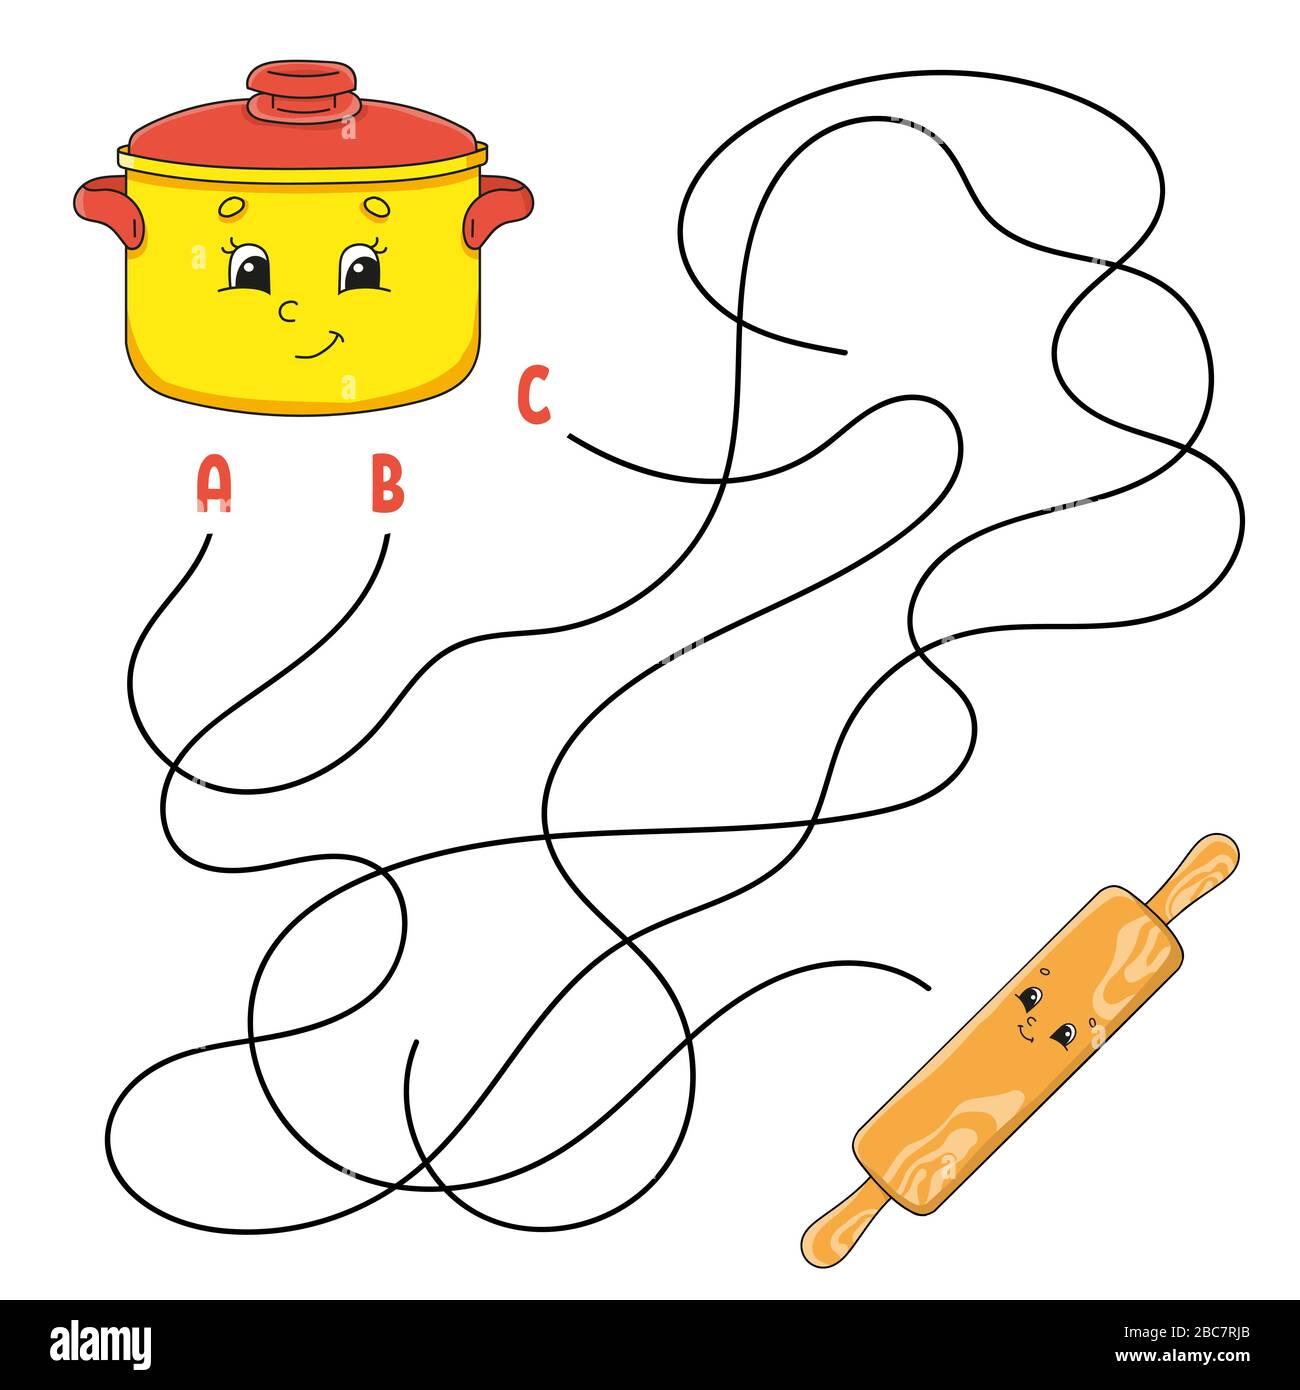 Easy Maze Stewpan And Rolling Pin Labyrinth For Kids Activity